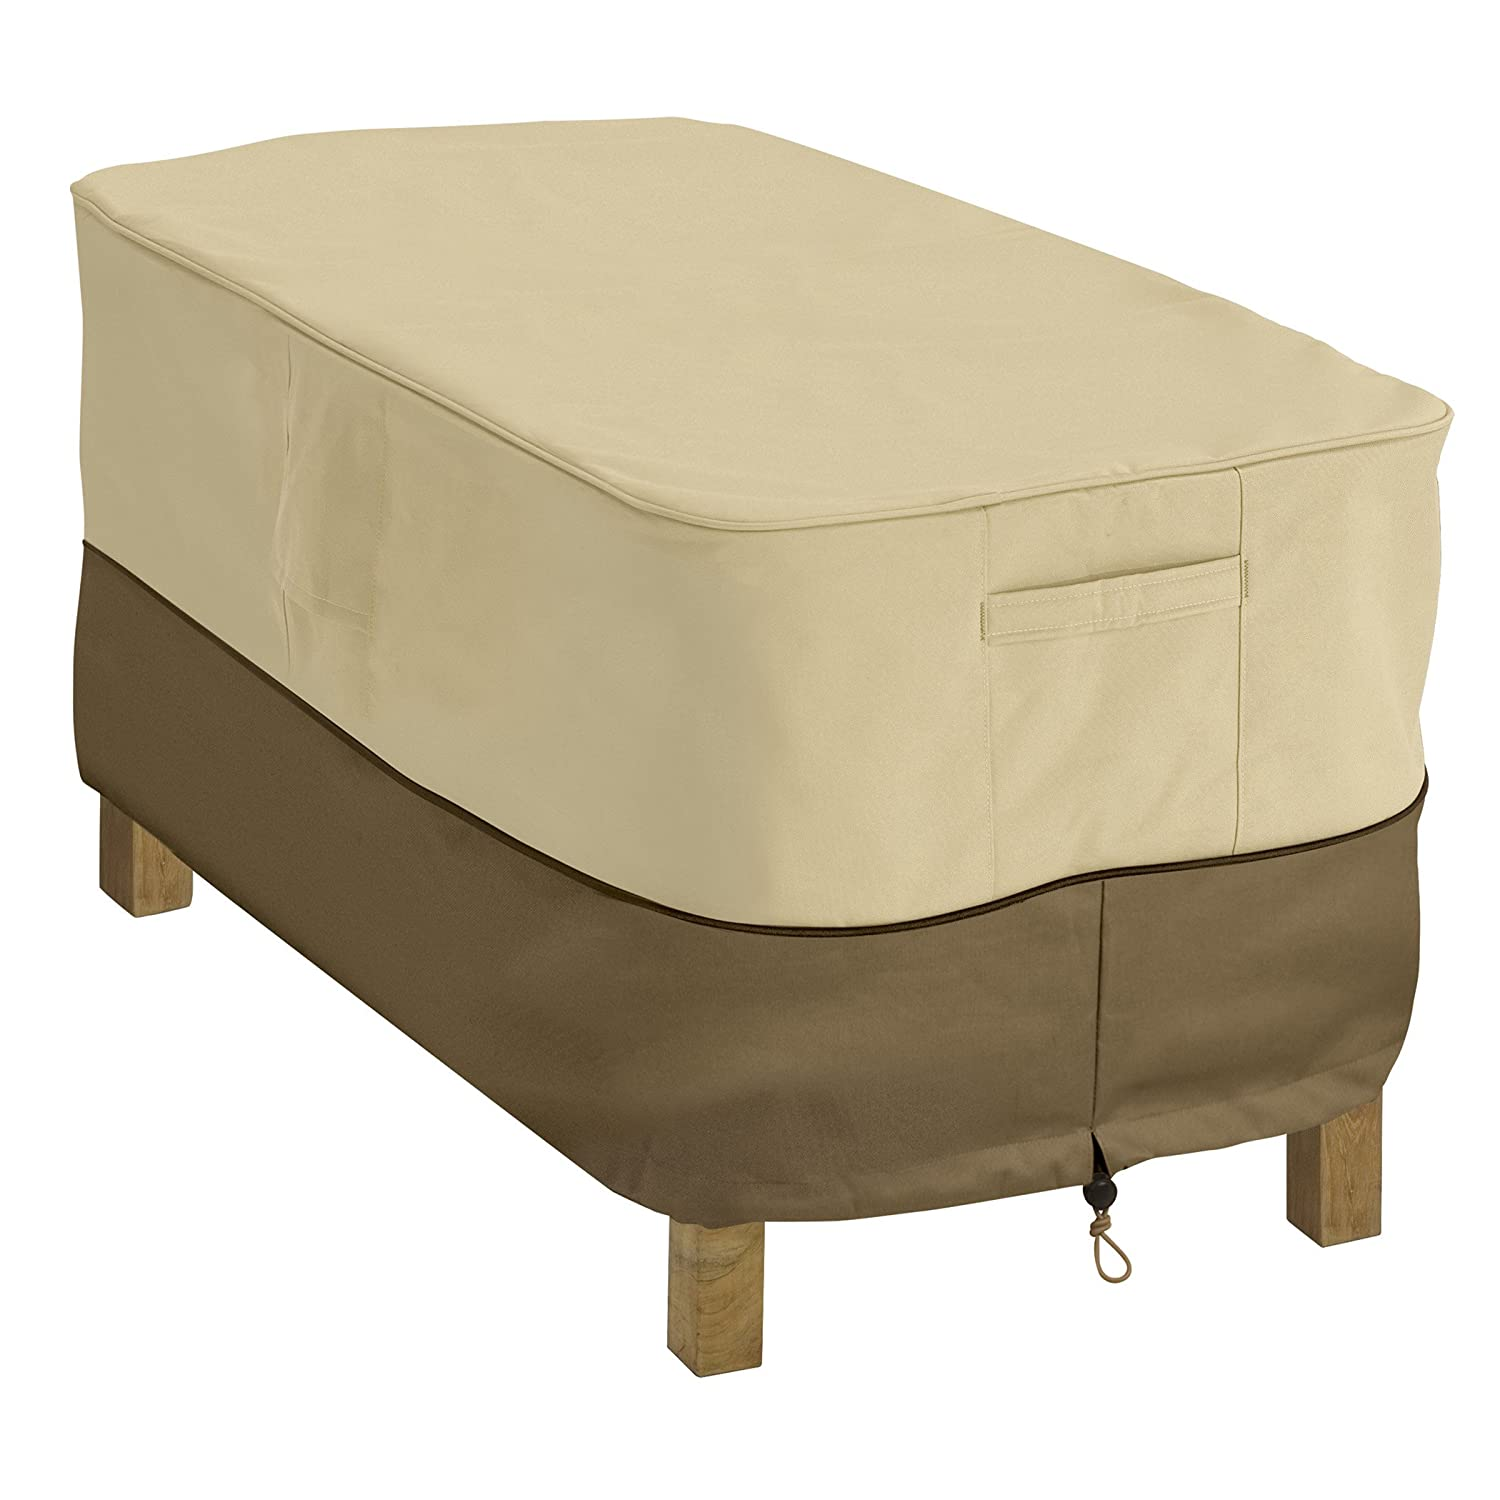 Amazon Classic Accessories Veranda Patio Coffee Table Cover